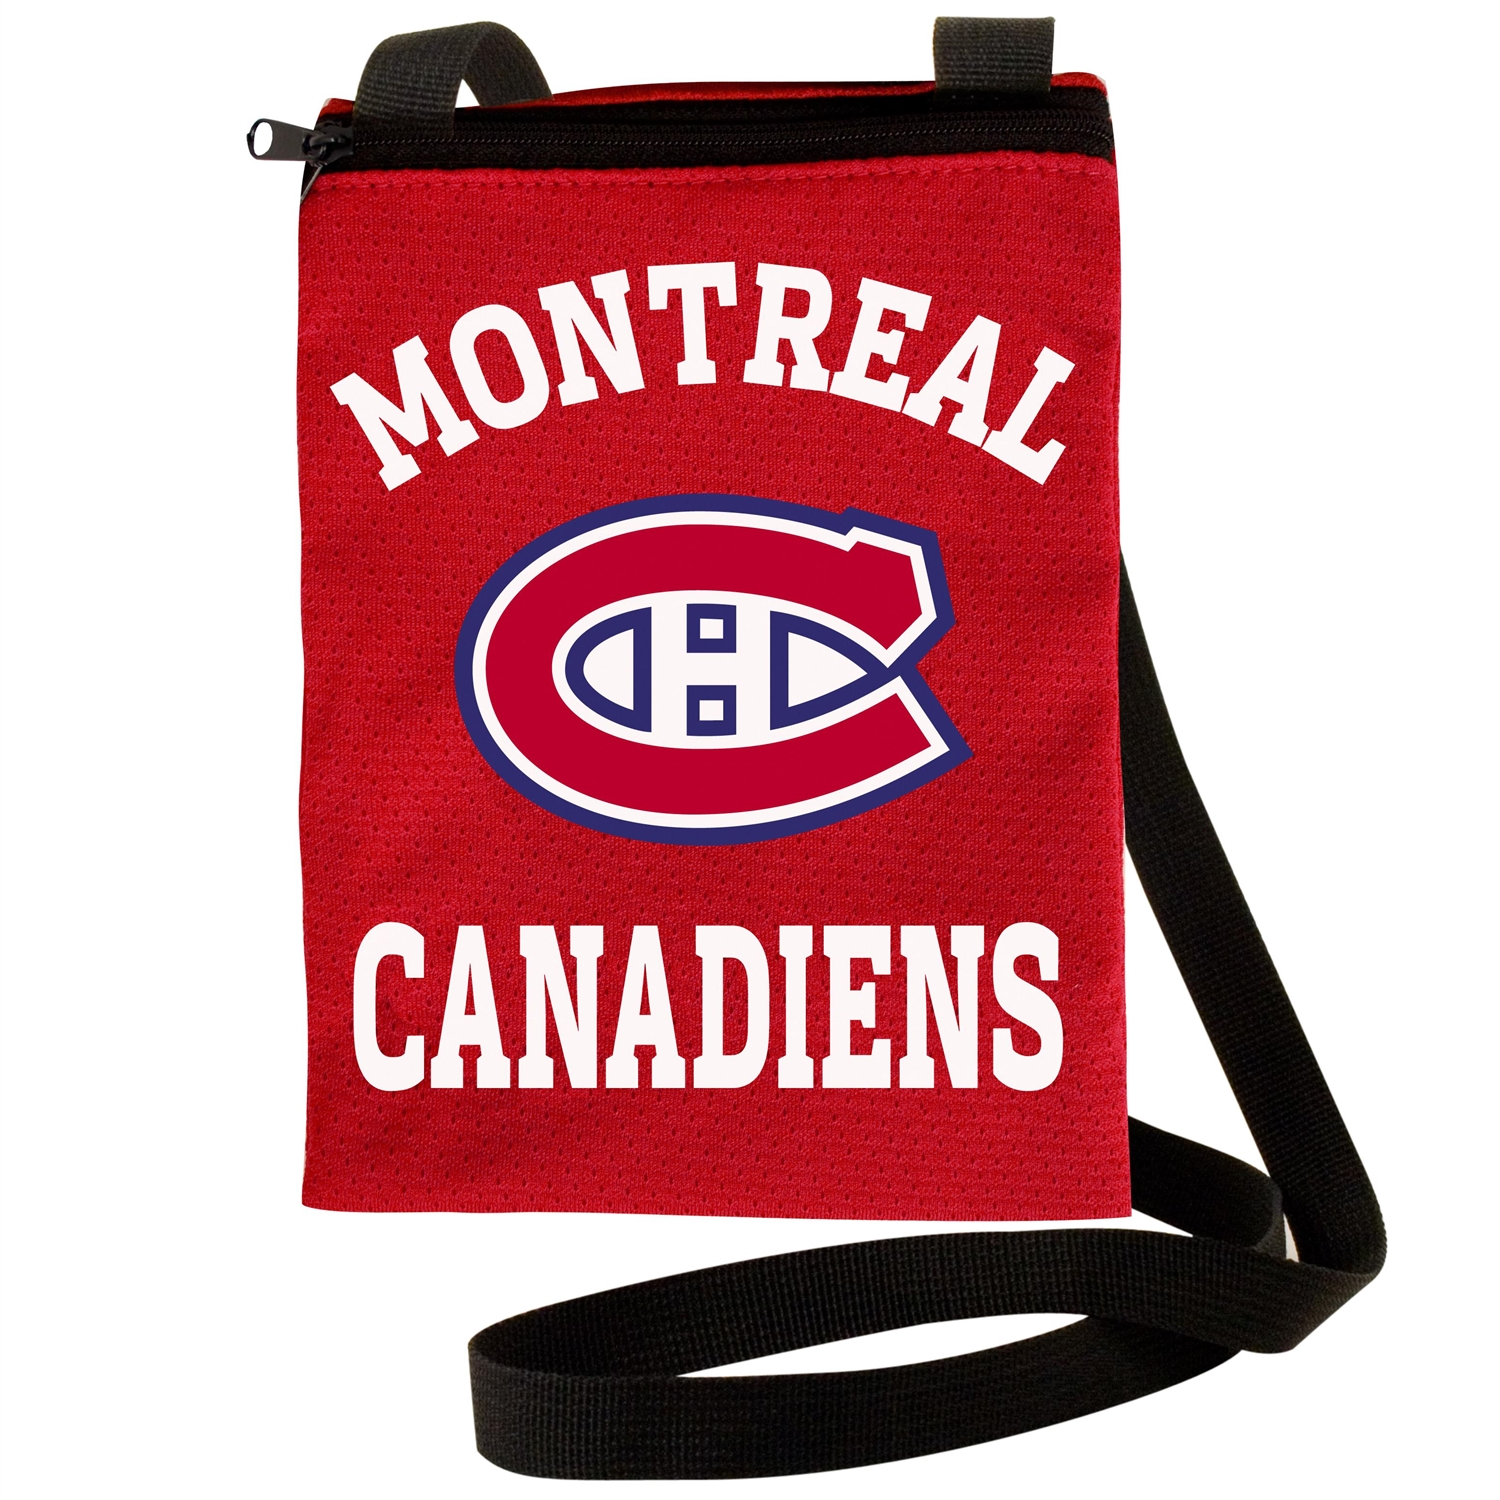 Montreal Canadiens Game Day Pouch - 500103-cand - Nhl Hockey Montreal Canadiens Toys Games Puzzles Games 500103-CAND